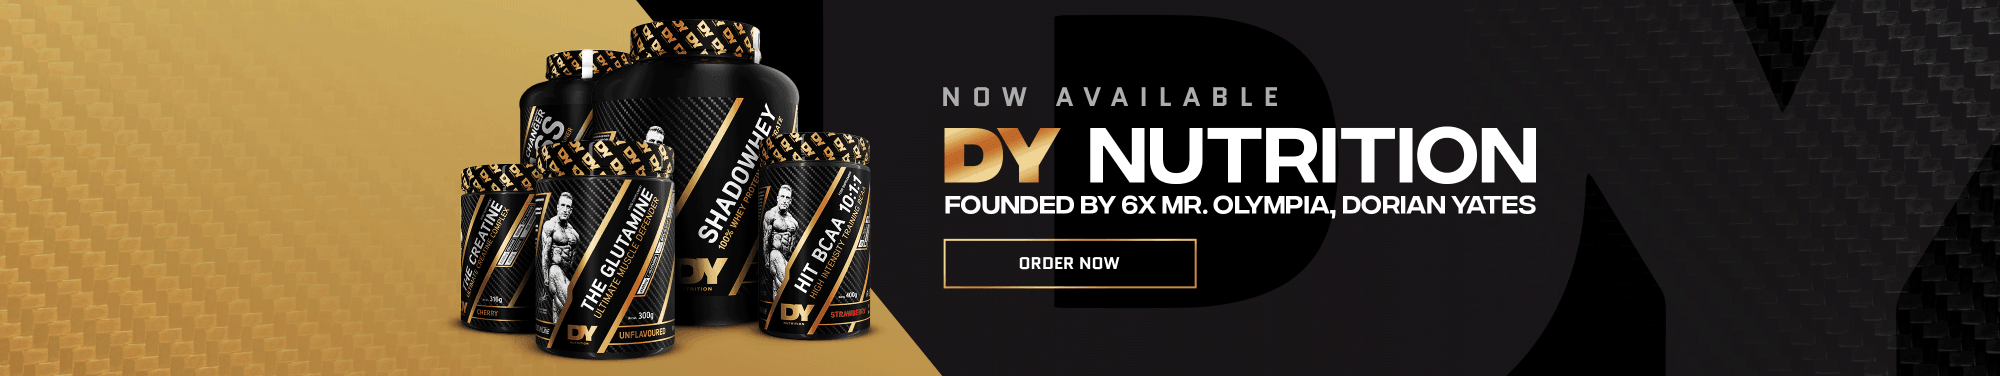 DY Nutrition Now Available